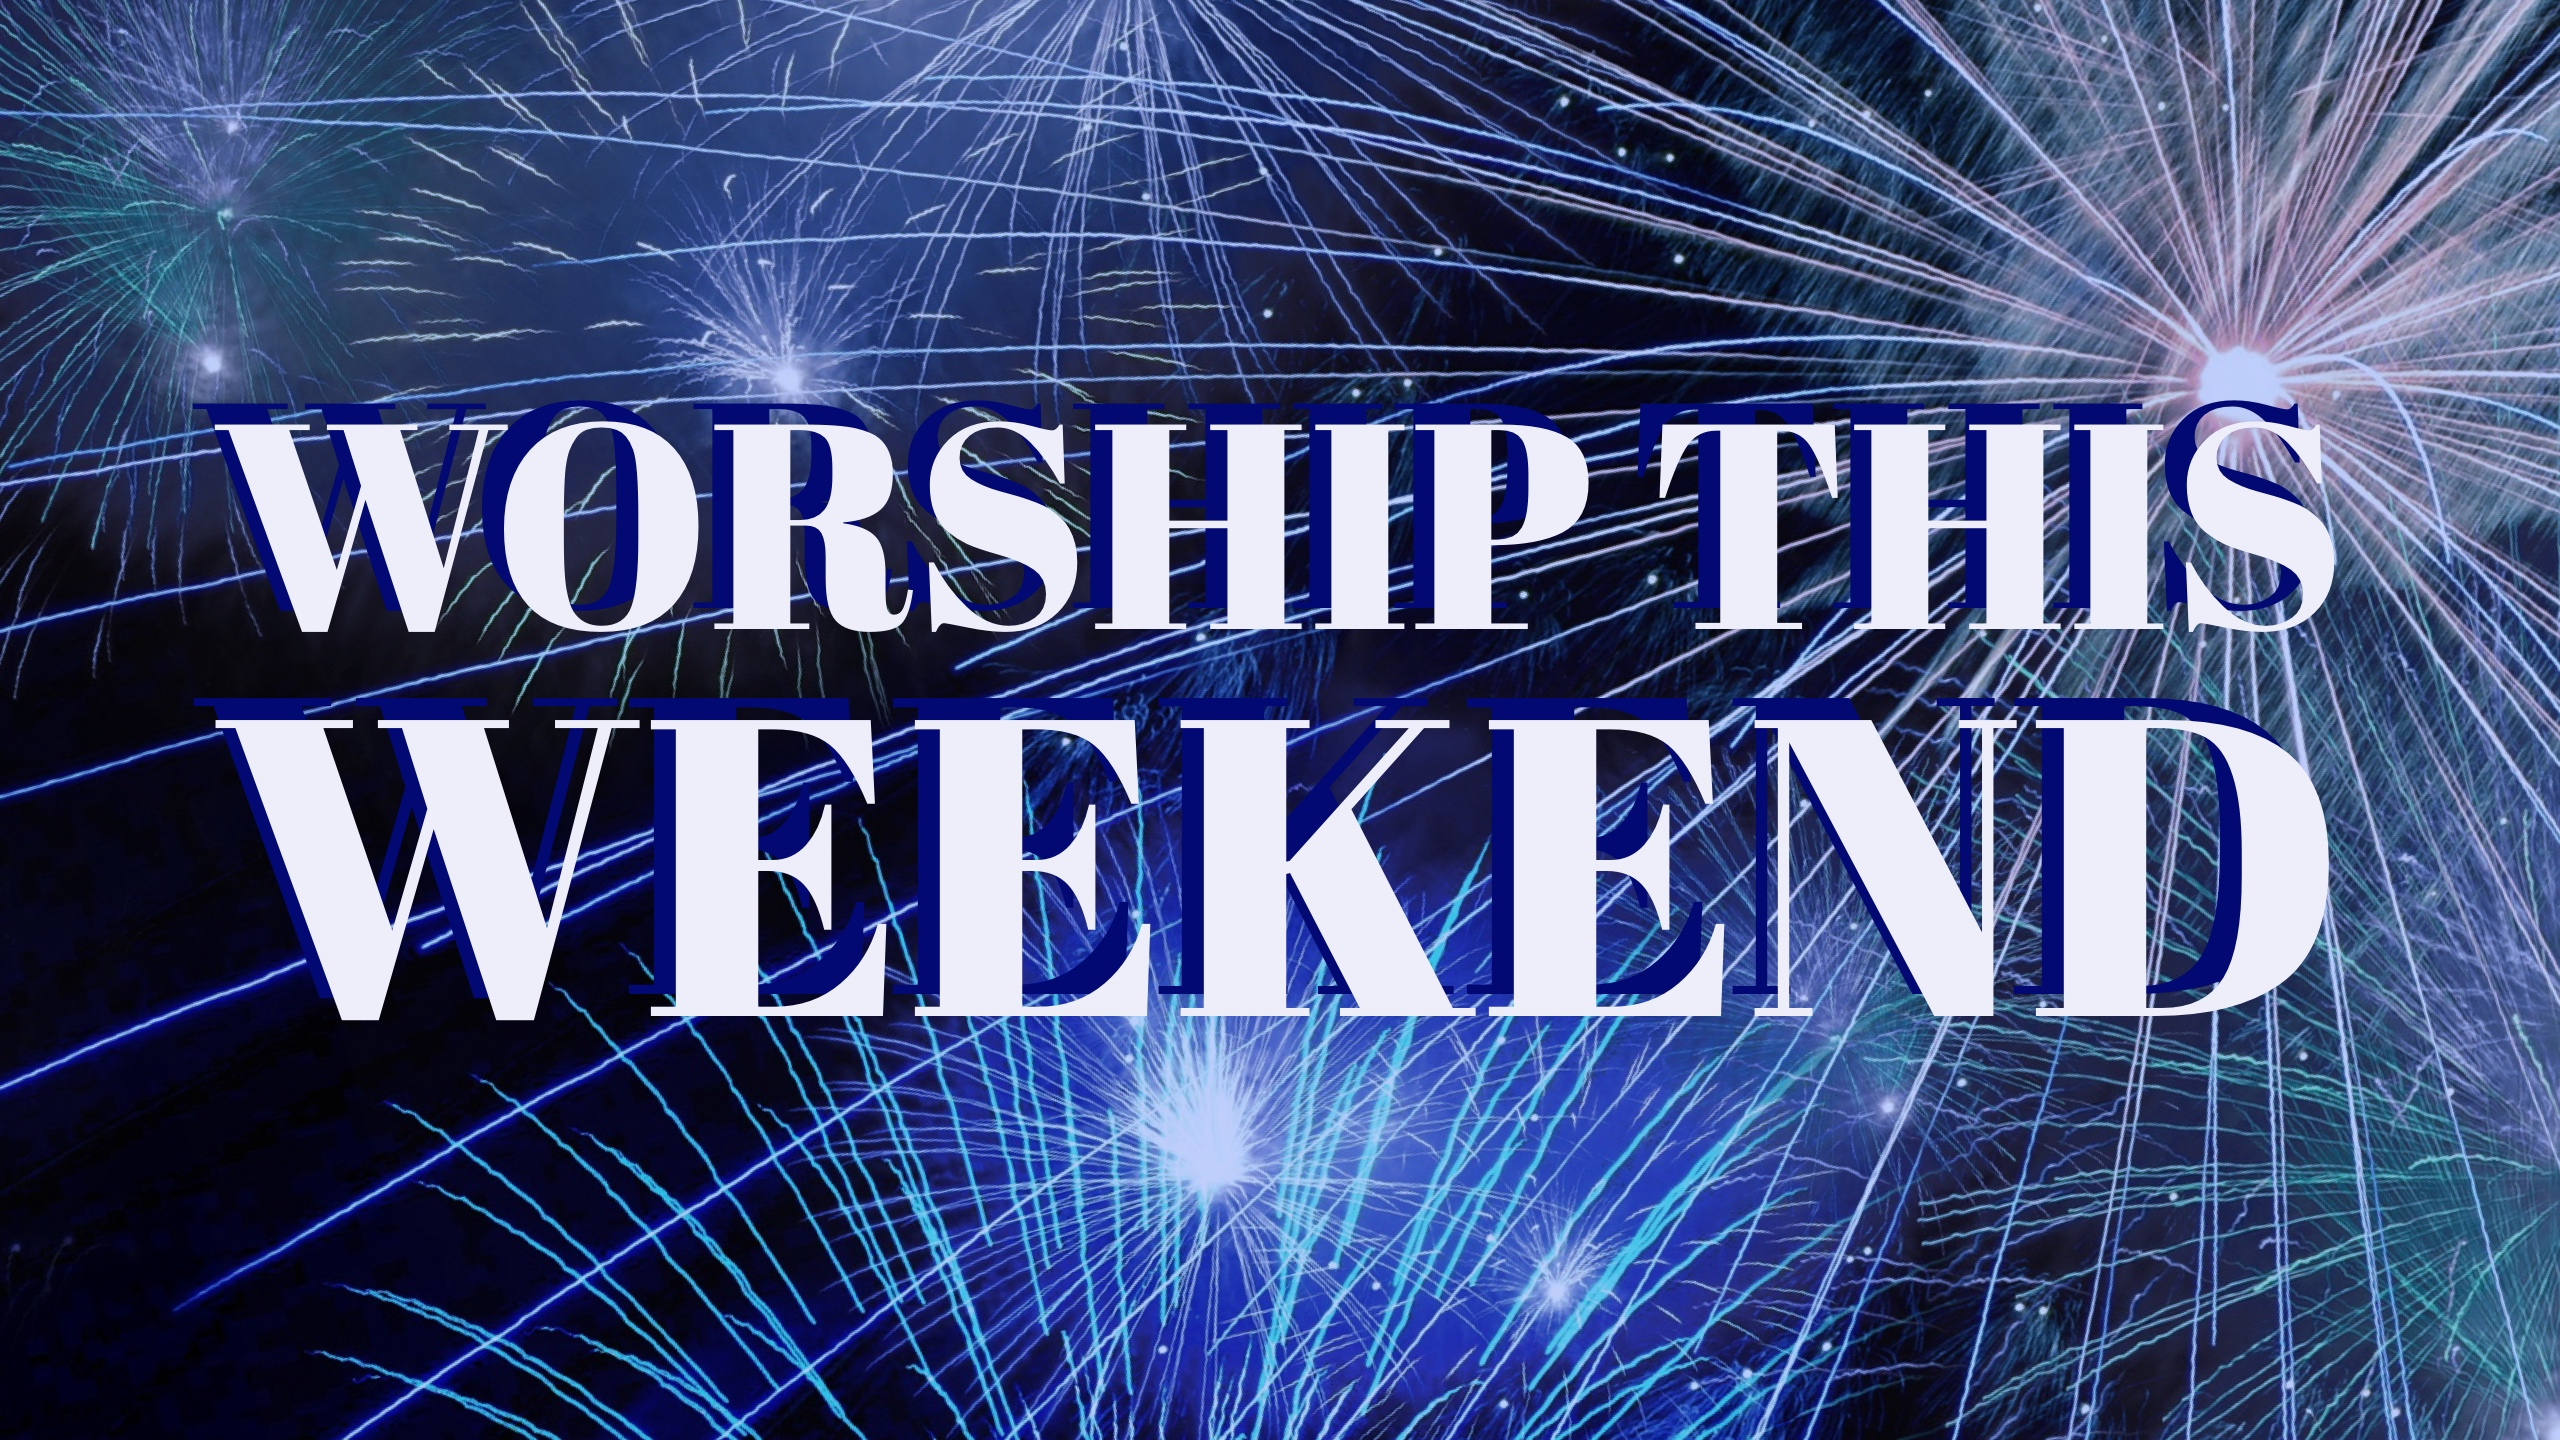 Worship This Weekend 2017